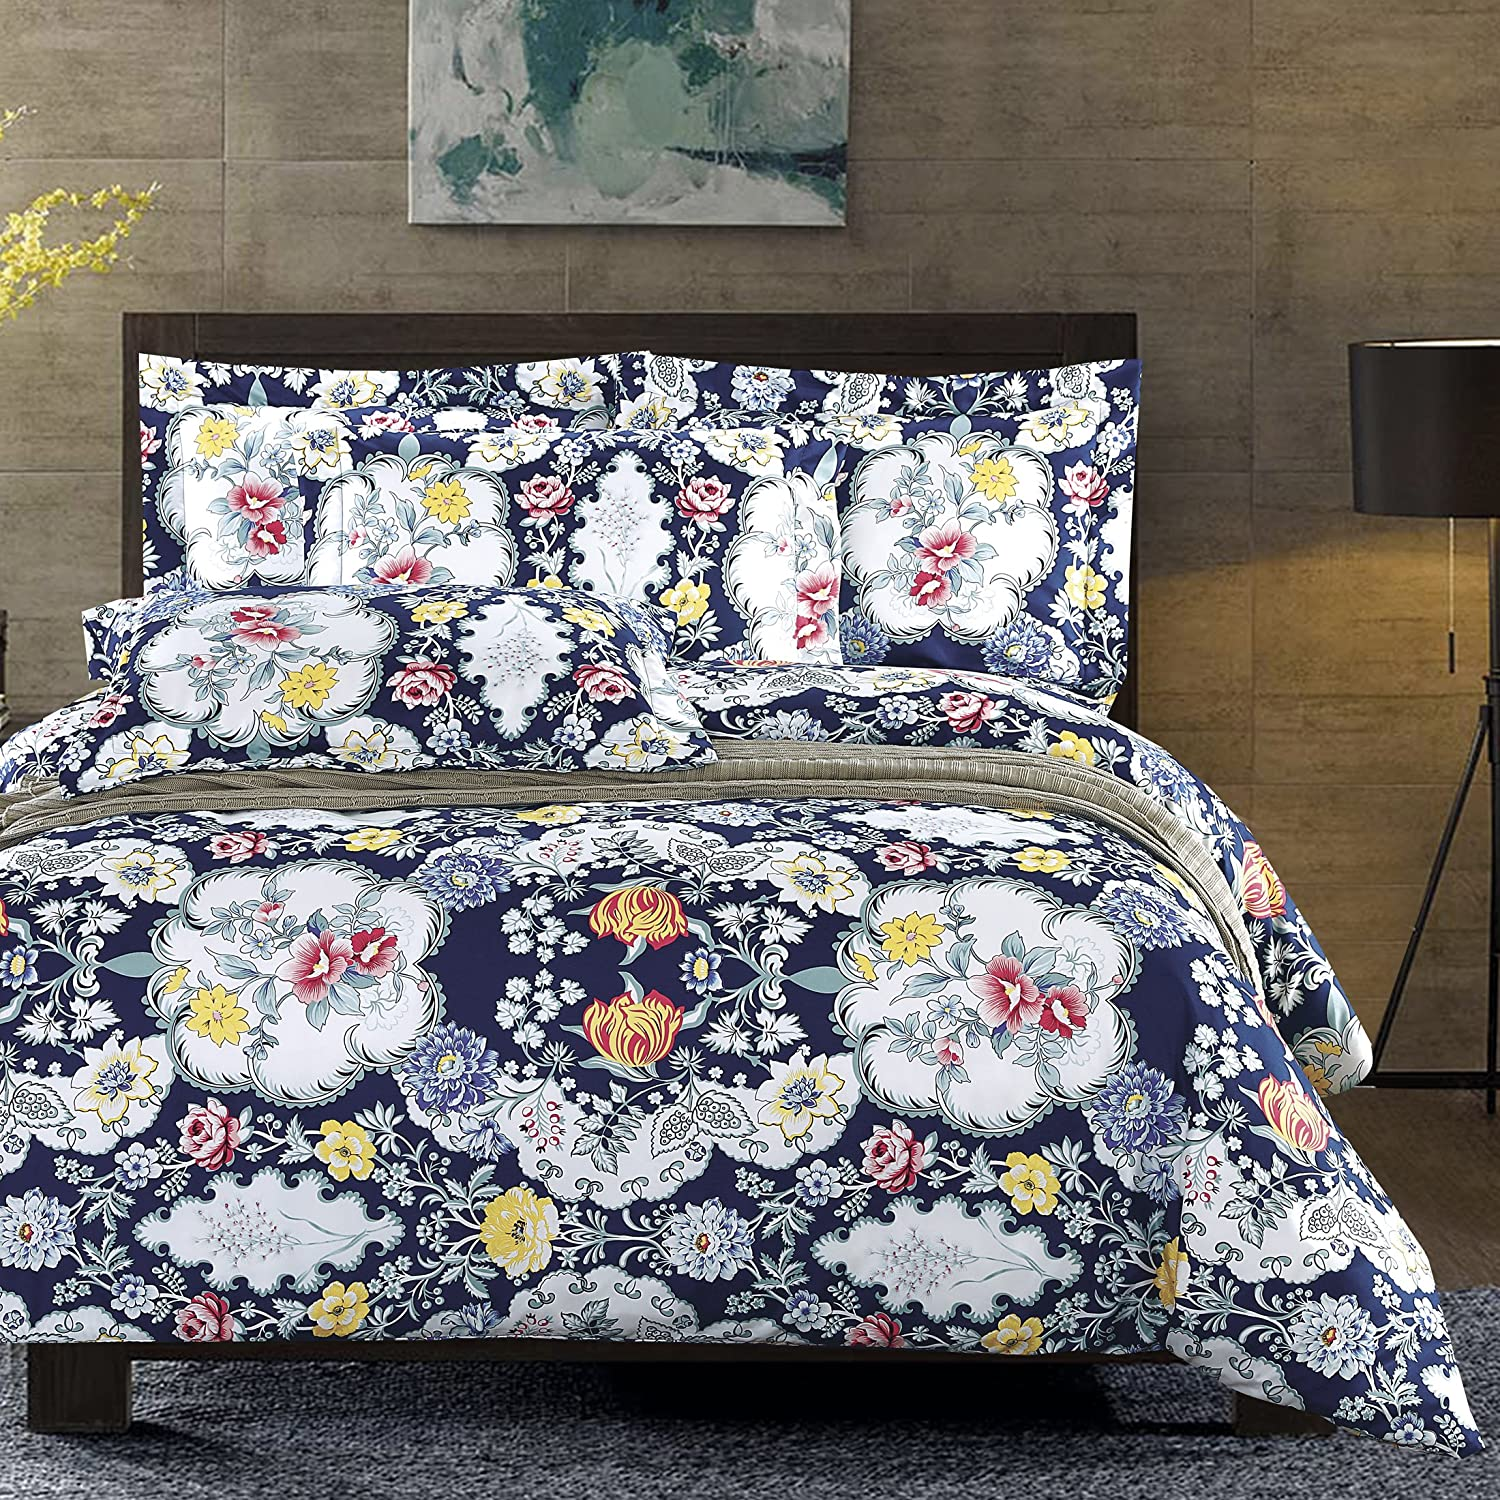 DelbouTree 3pcs Bedding Set,Lightweight Microfiber Duvet Cover Set,Full Queen size Navy Blossom